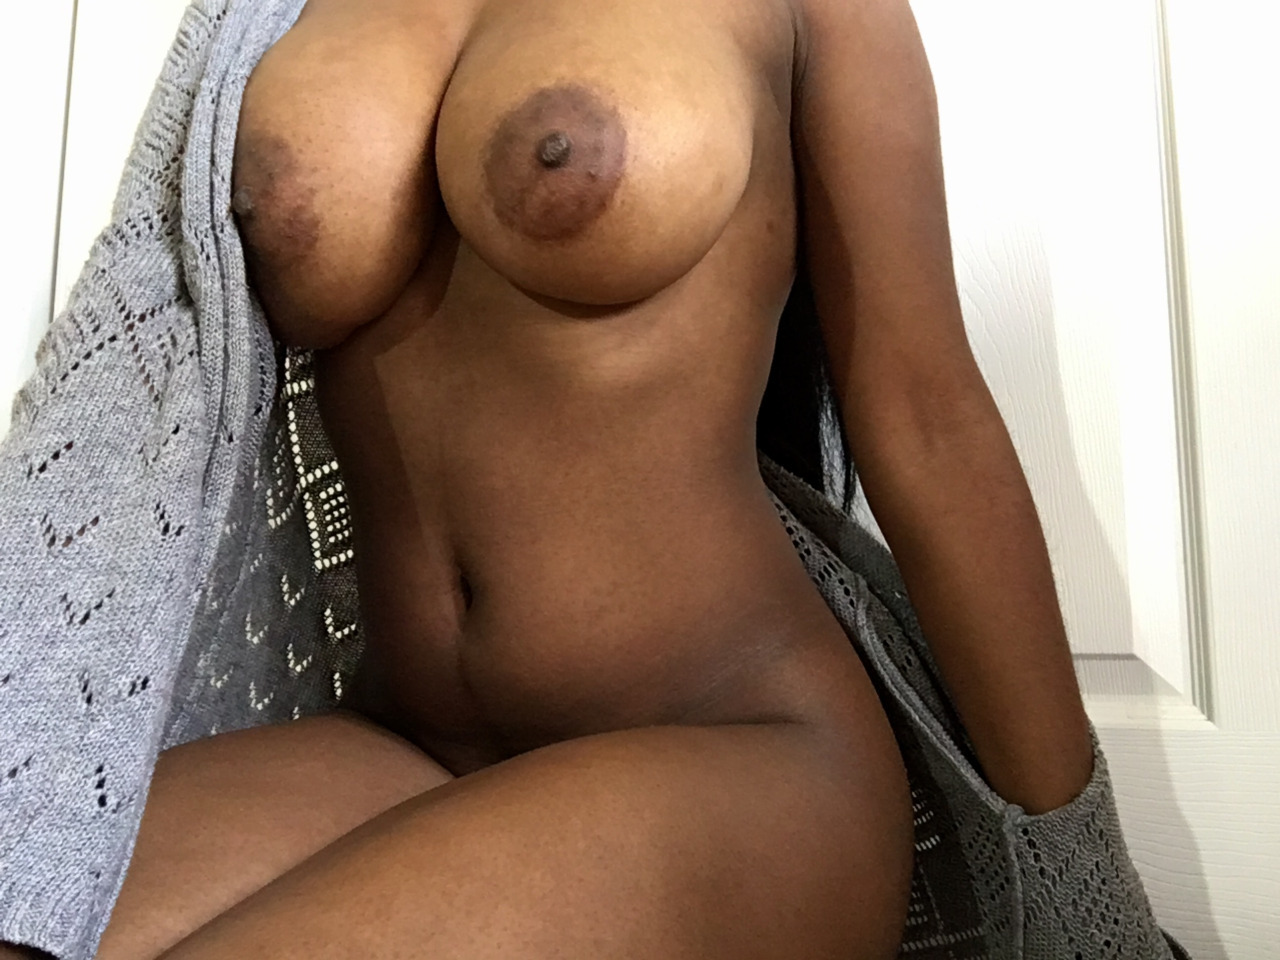 Sexy pictures boobs bbw-porn-for-free